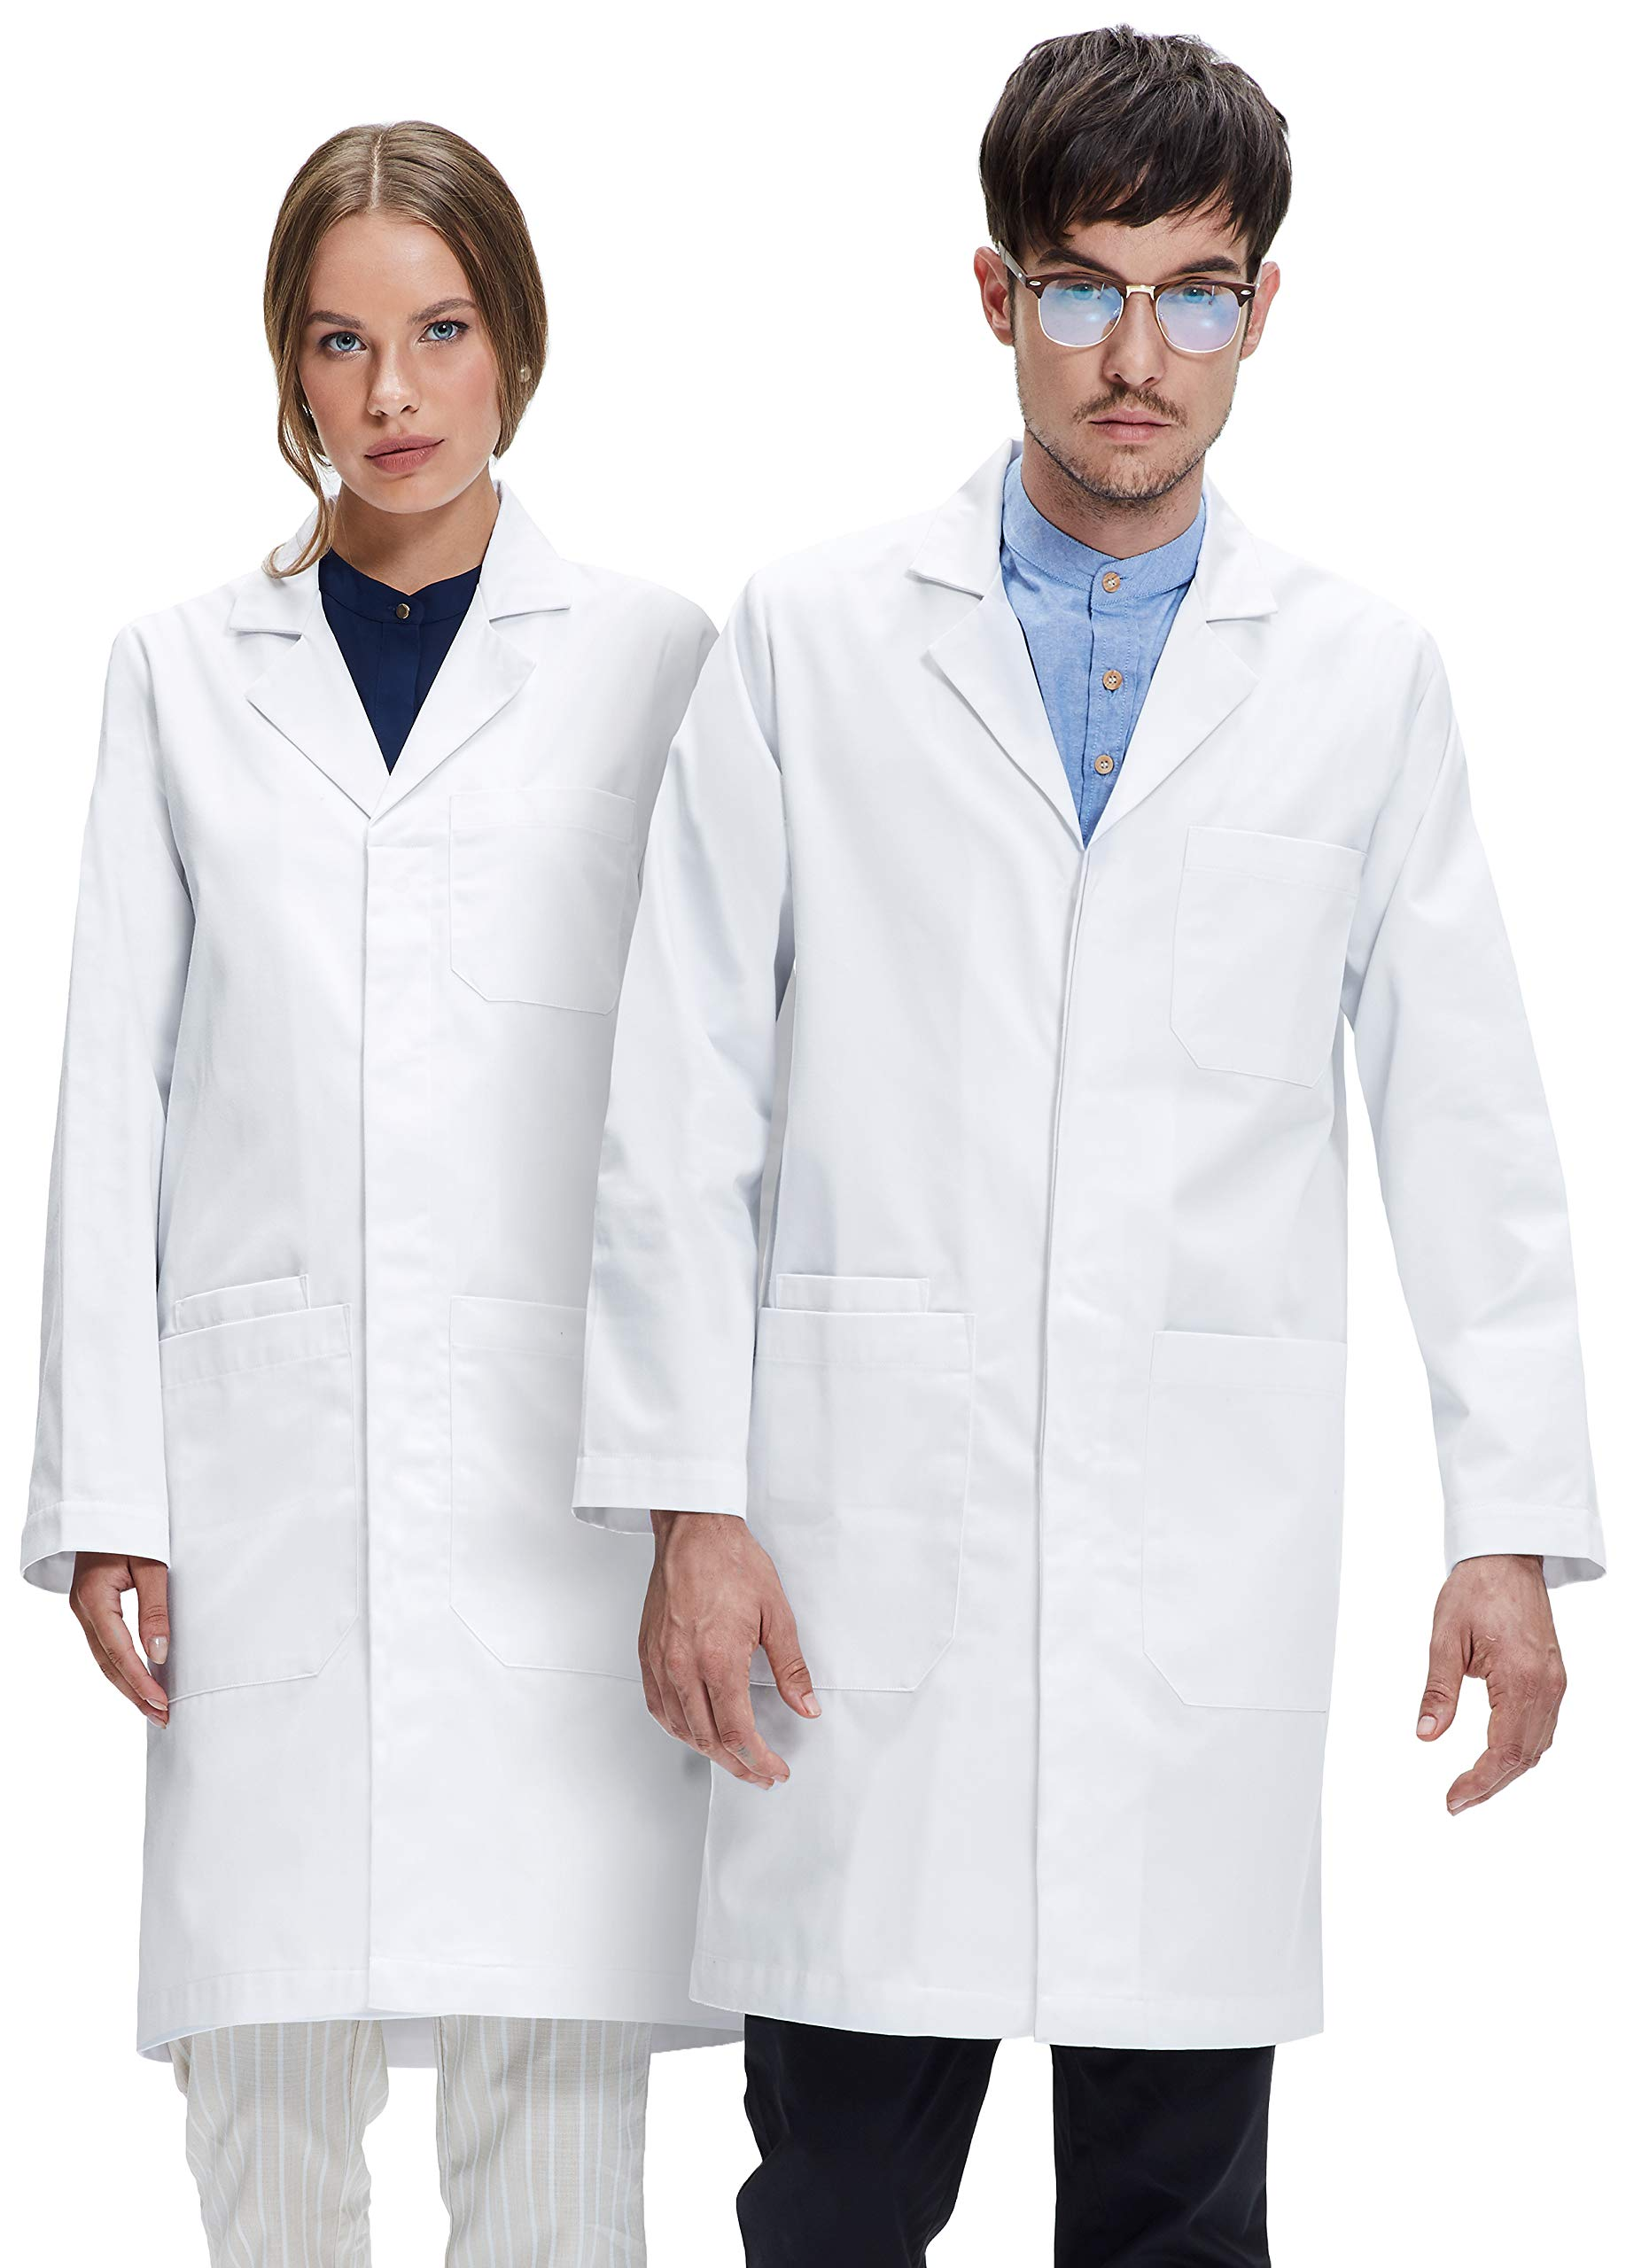 Dr. James Professionally Designed Unisex Lab Coat - 39 Inch Length US-01-2XL by Dr. James